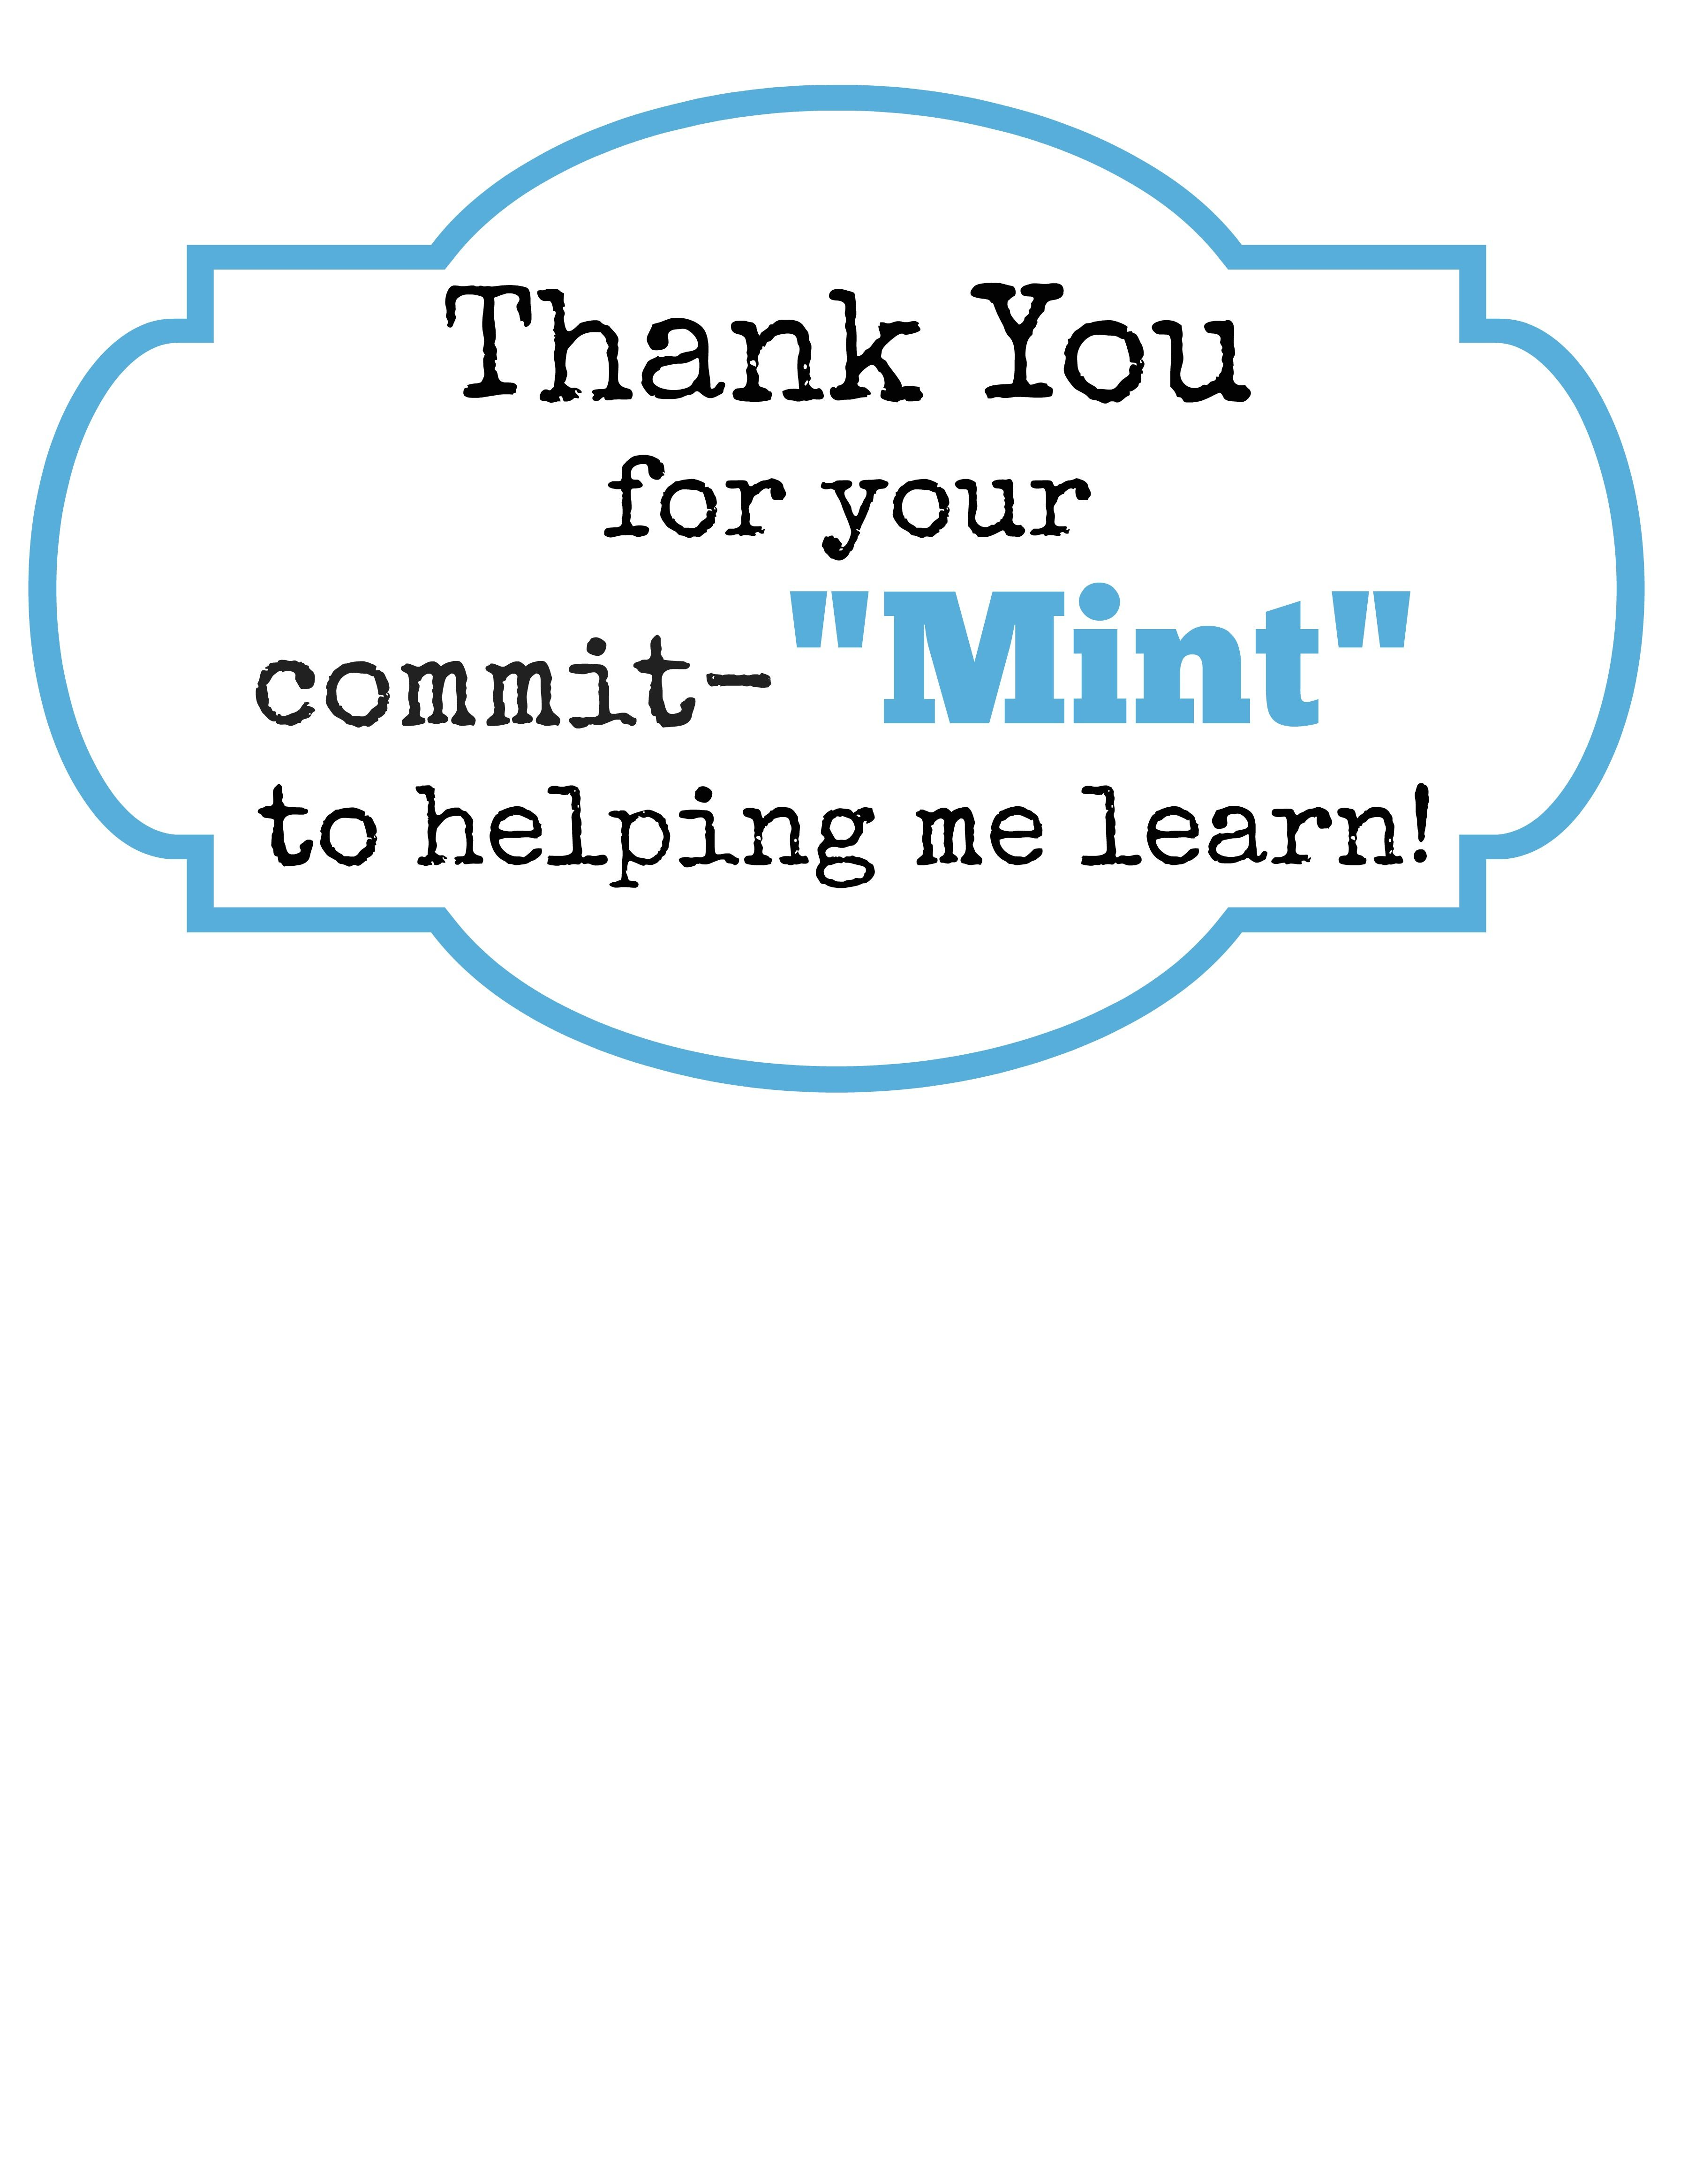 photograph relating to Thank You for Your Commit Mint Printable known as Instructor Present Strategy: Thank Your self for Your Invest-MINT with